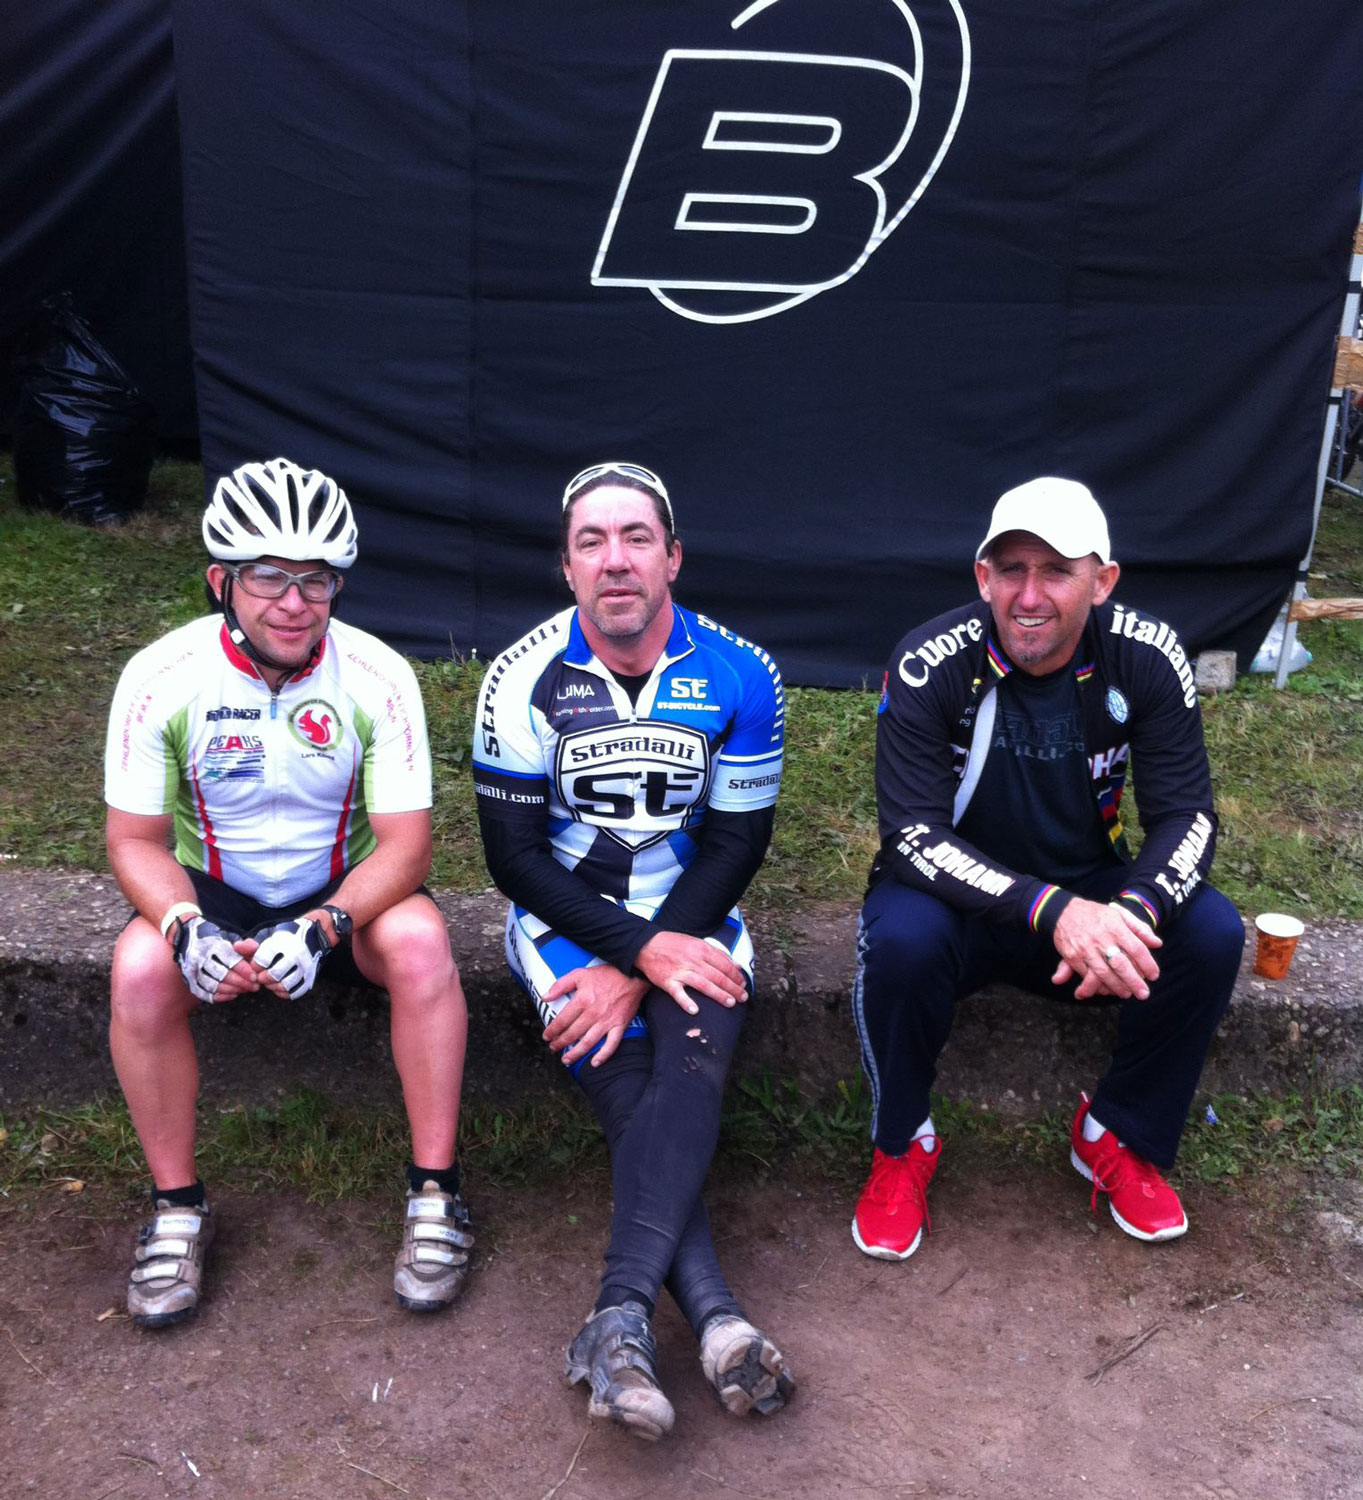 stradalli_team_29er_tom_steinbacher_grant_potter_duisburg_24h_mtb_races